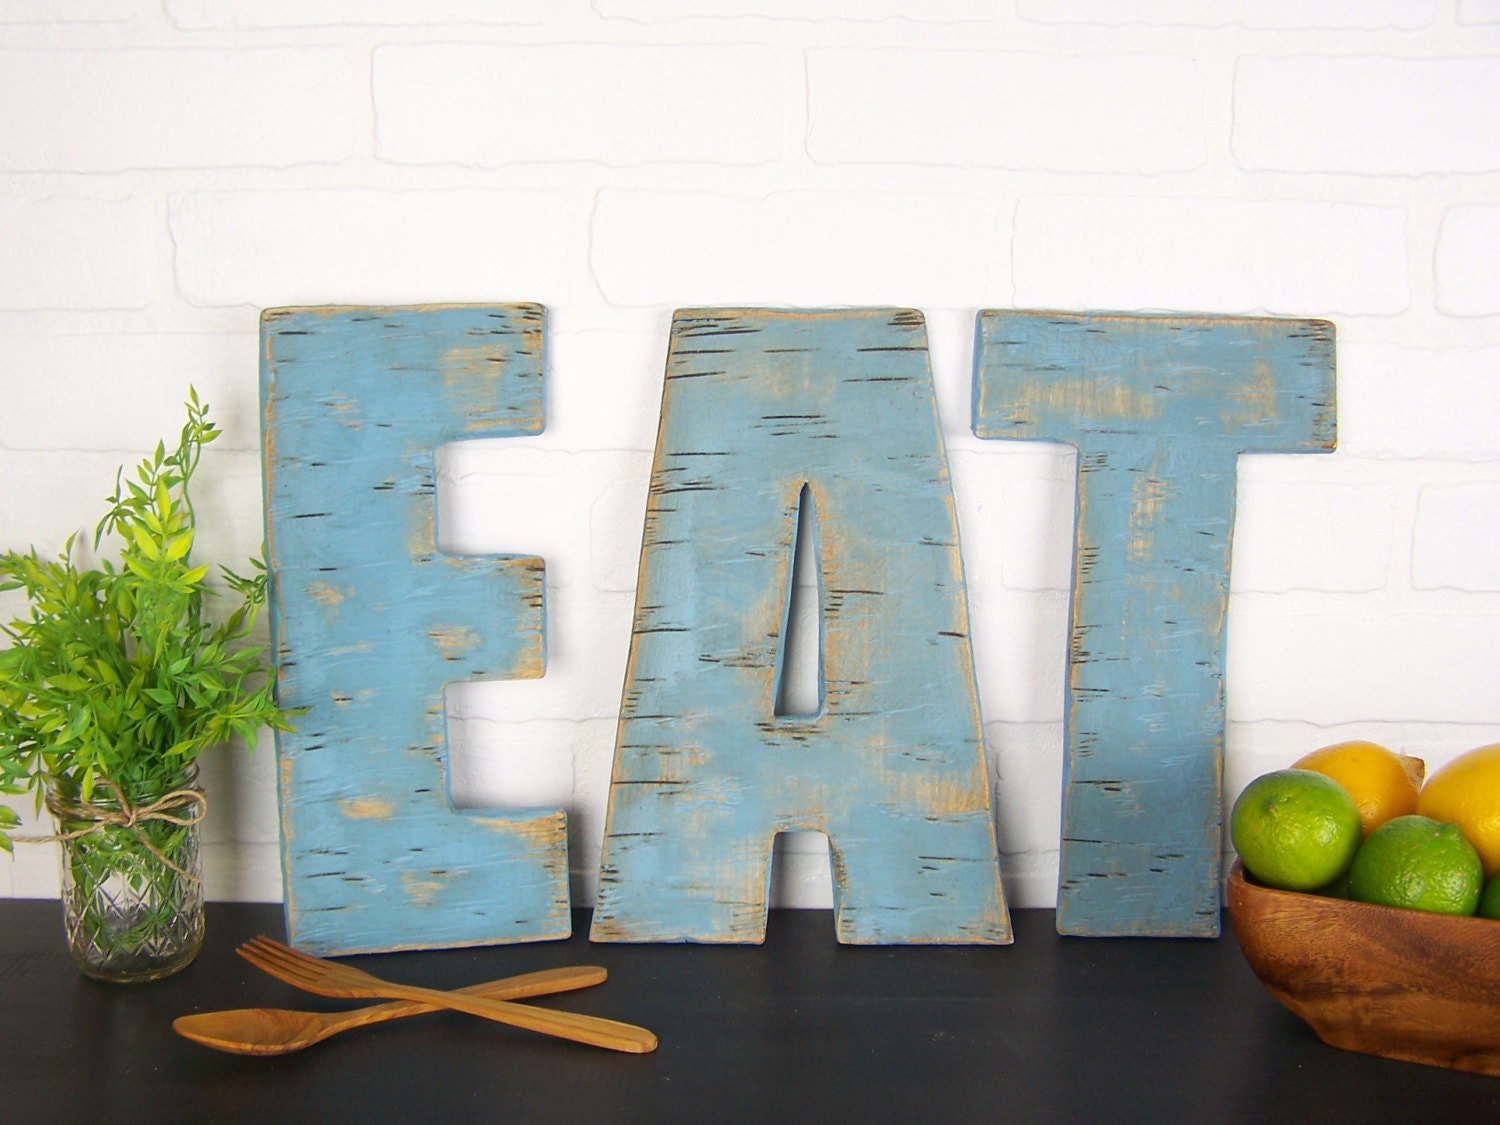 Rustic Eat Sign Wooden Letters Kitchen Farmhouse Decor Wood Wall Dining Room Restaurant